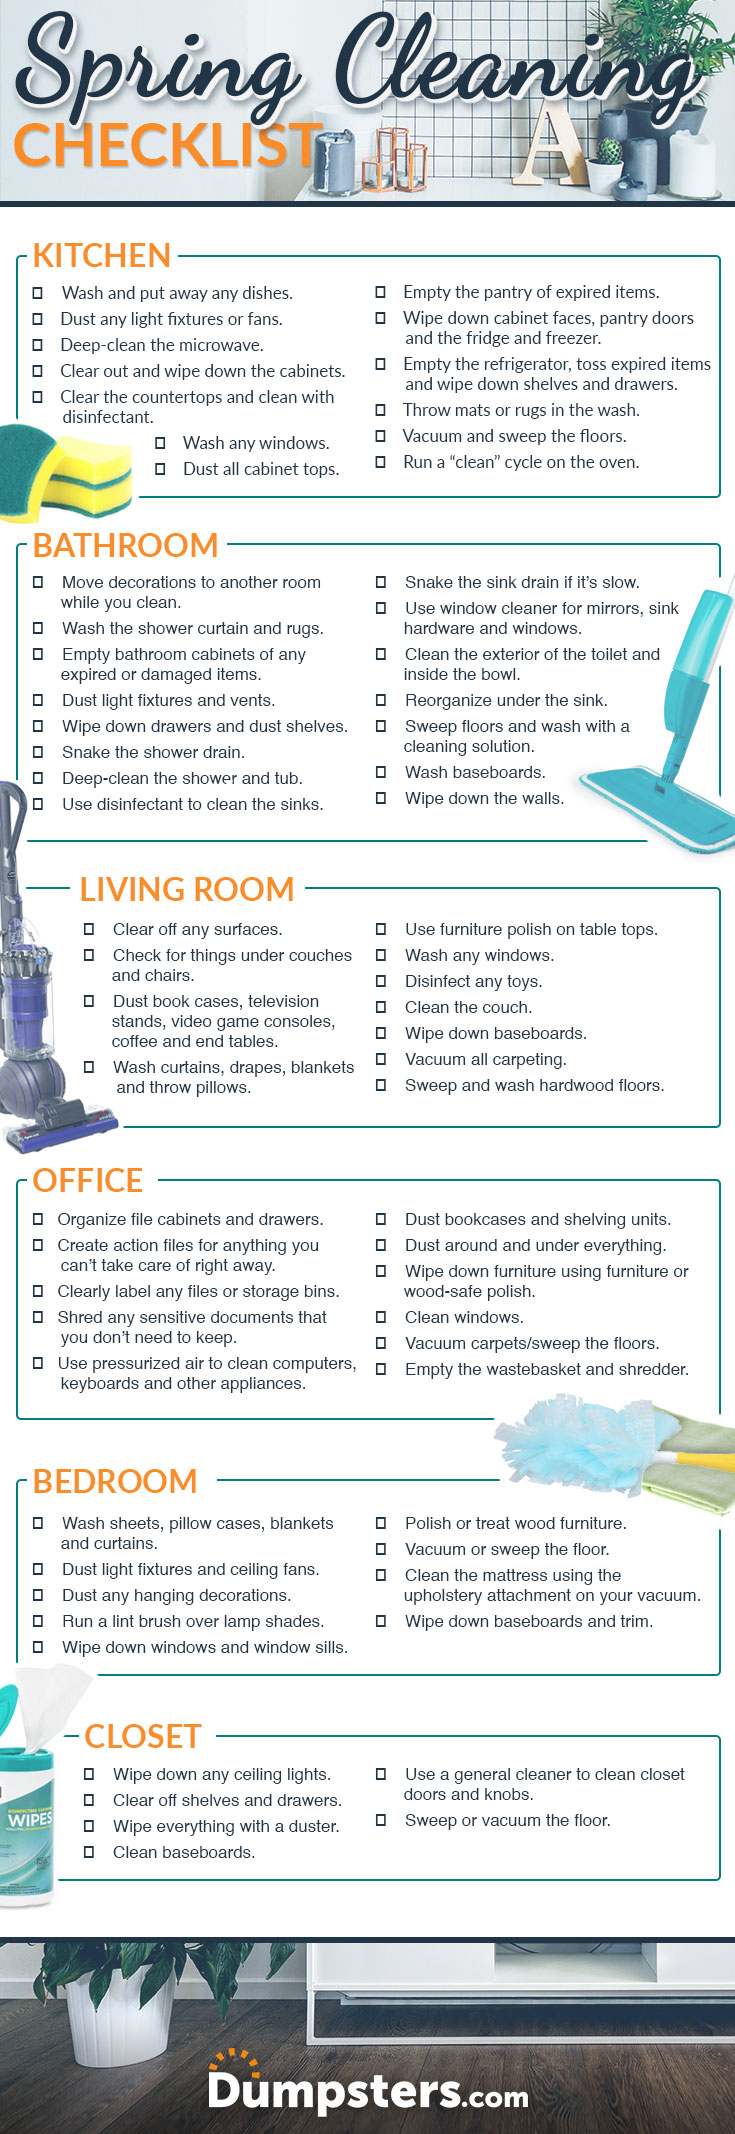 Room By Room Spring Cleaning Checklist